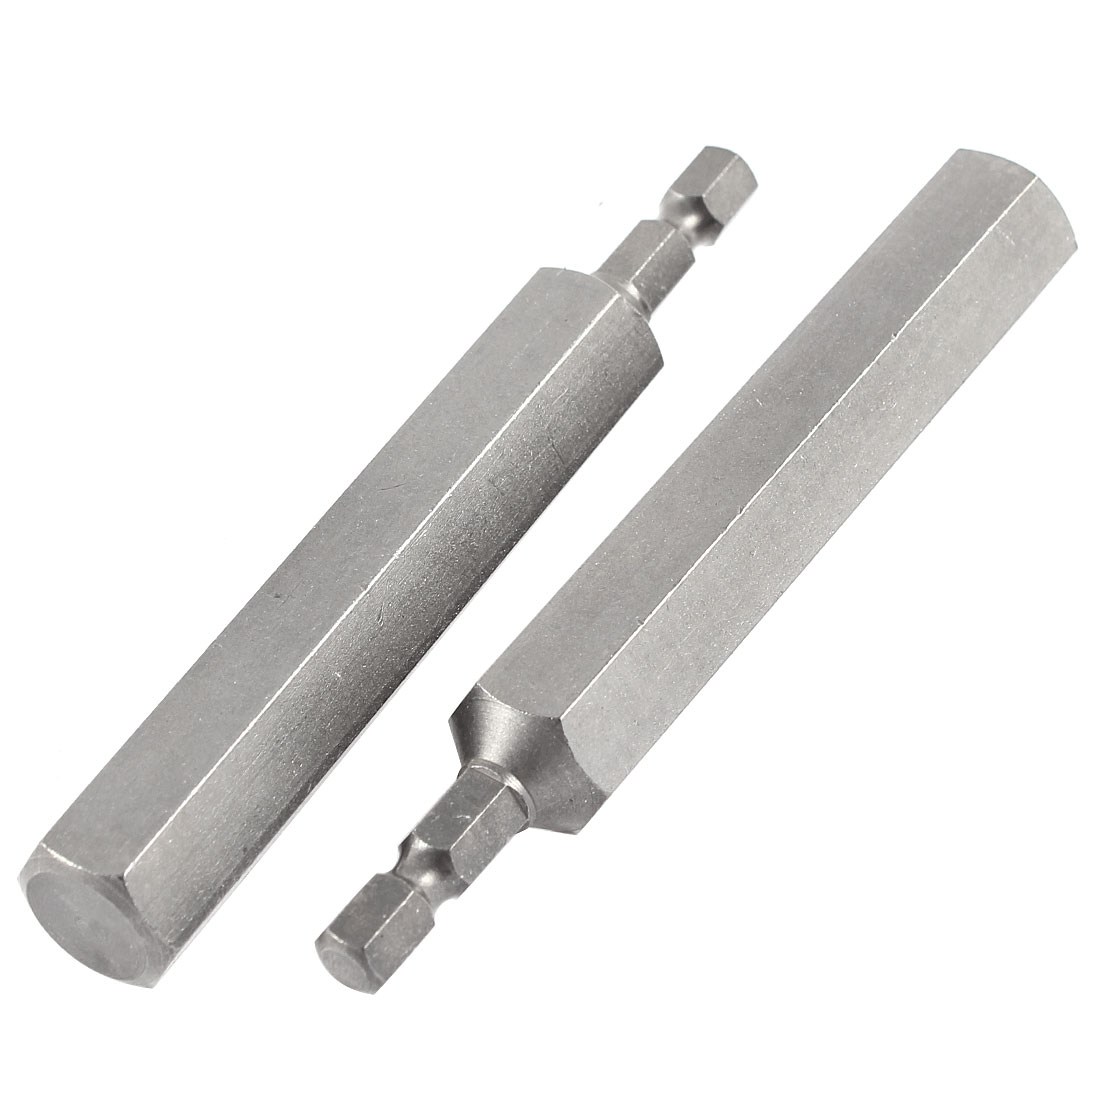 "1/4"" Shank 14mm Hexagon Head 100mm Long Magnetic Wrench Screwdriver Bit 2pcs"